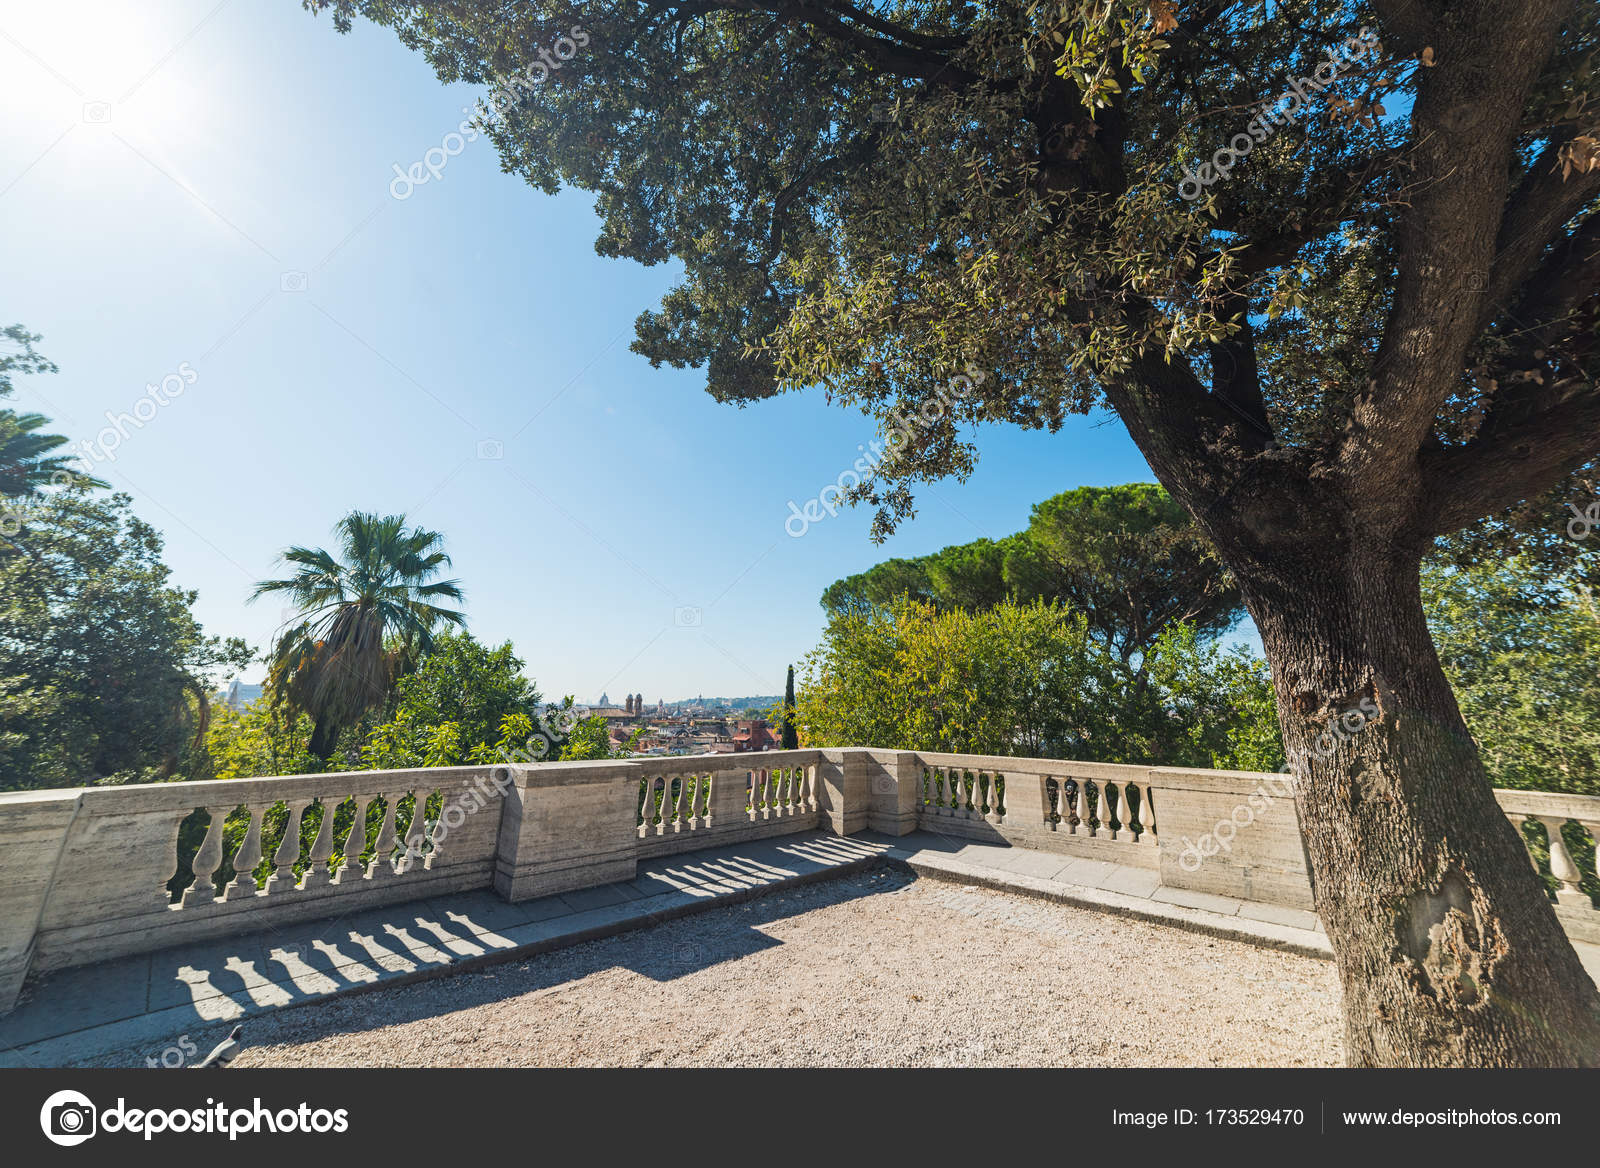 Terrazza del Pincio on a sunny day — Stock Photo © AlKan32 #173529470